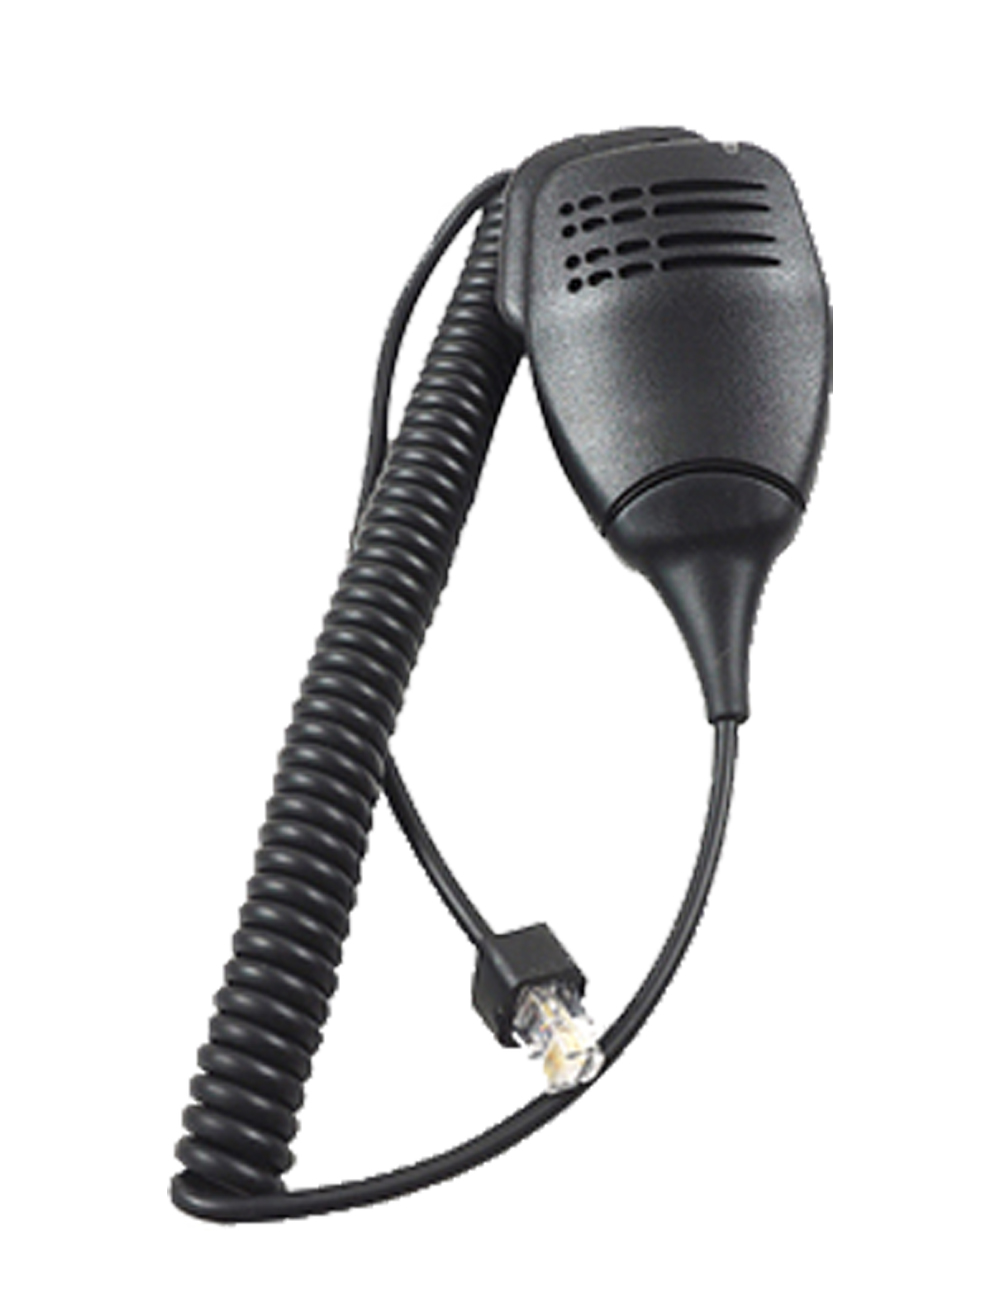 Speaker Microphone CTG-GM338 for Motorola Mobile Radio